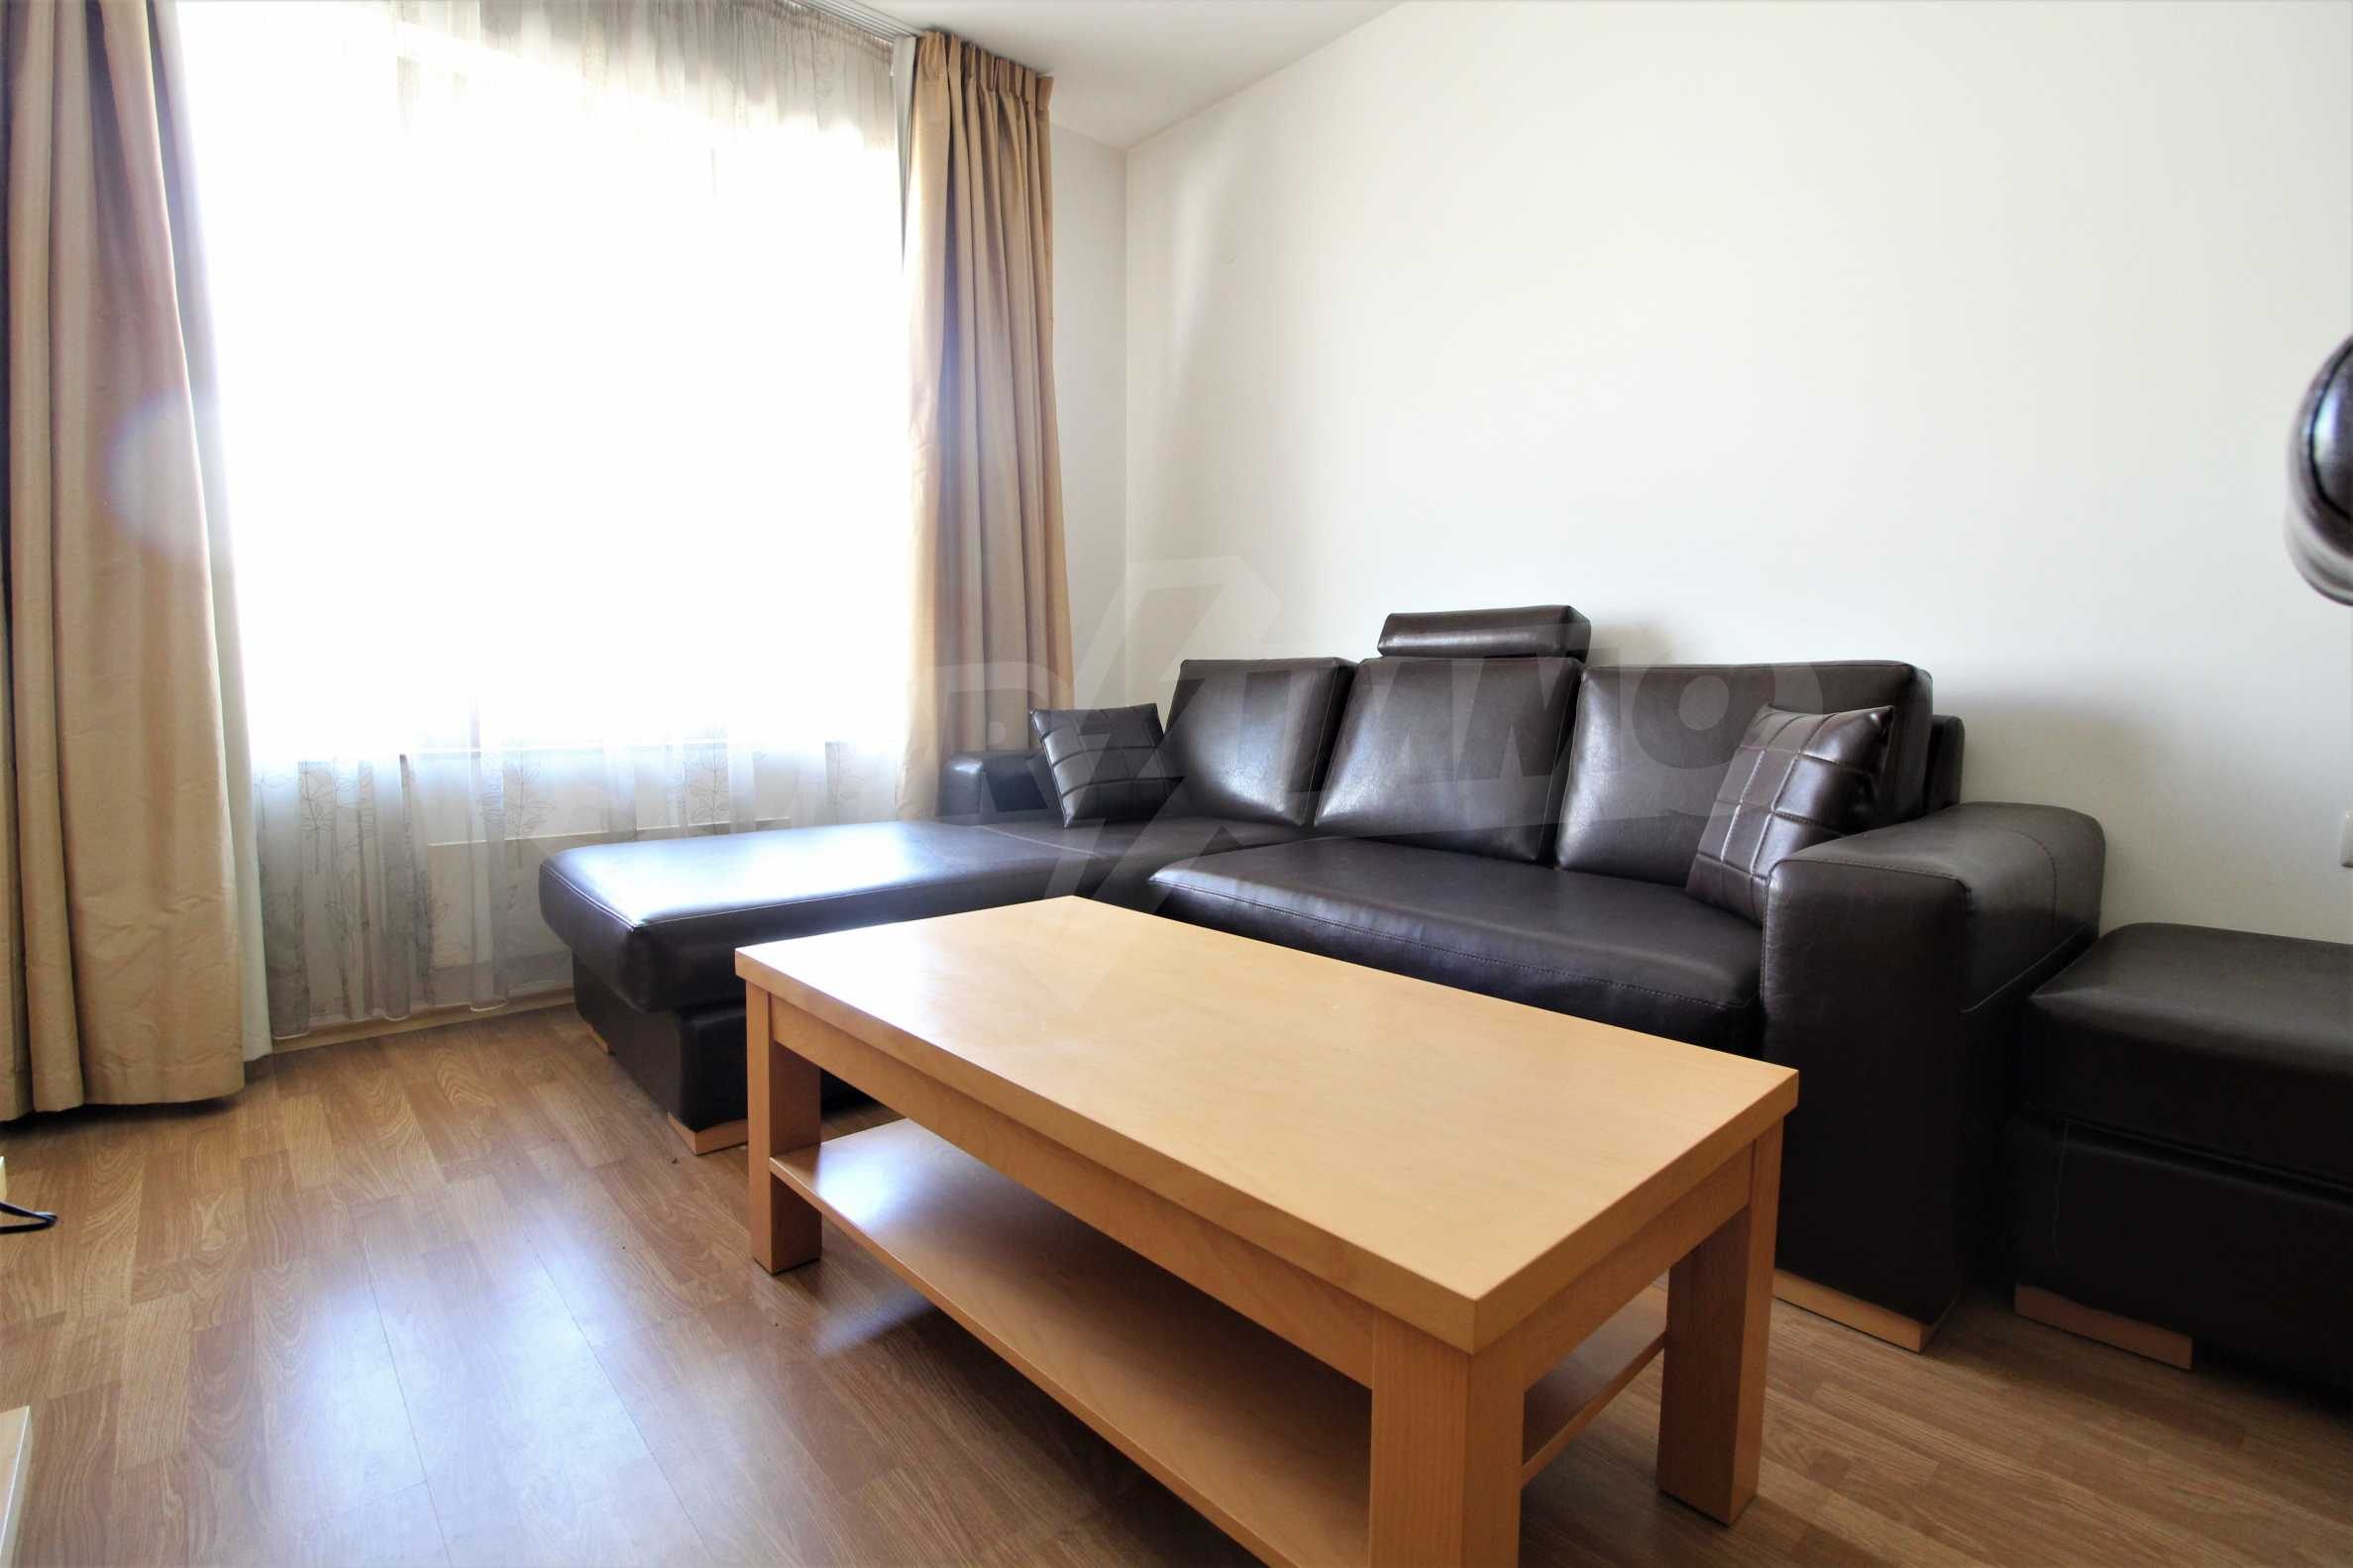 Furnished two-bedroom apartment located in Top Lodge complex, just meters from the ski lift in Bansko 3